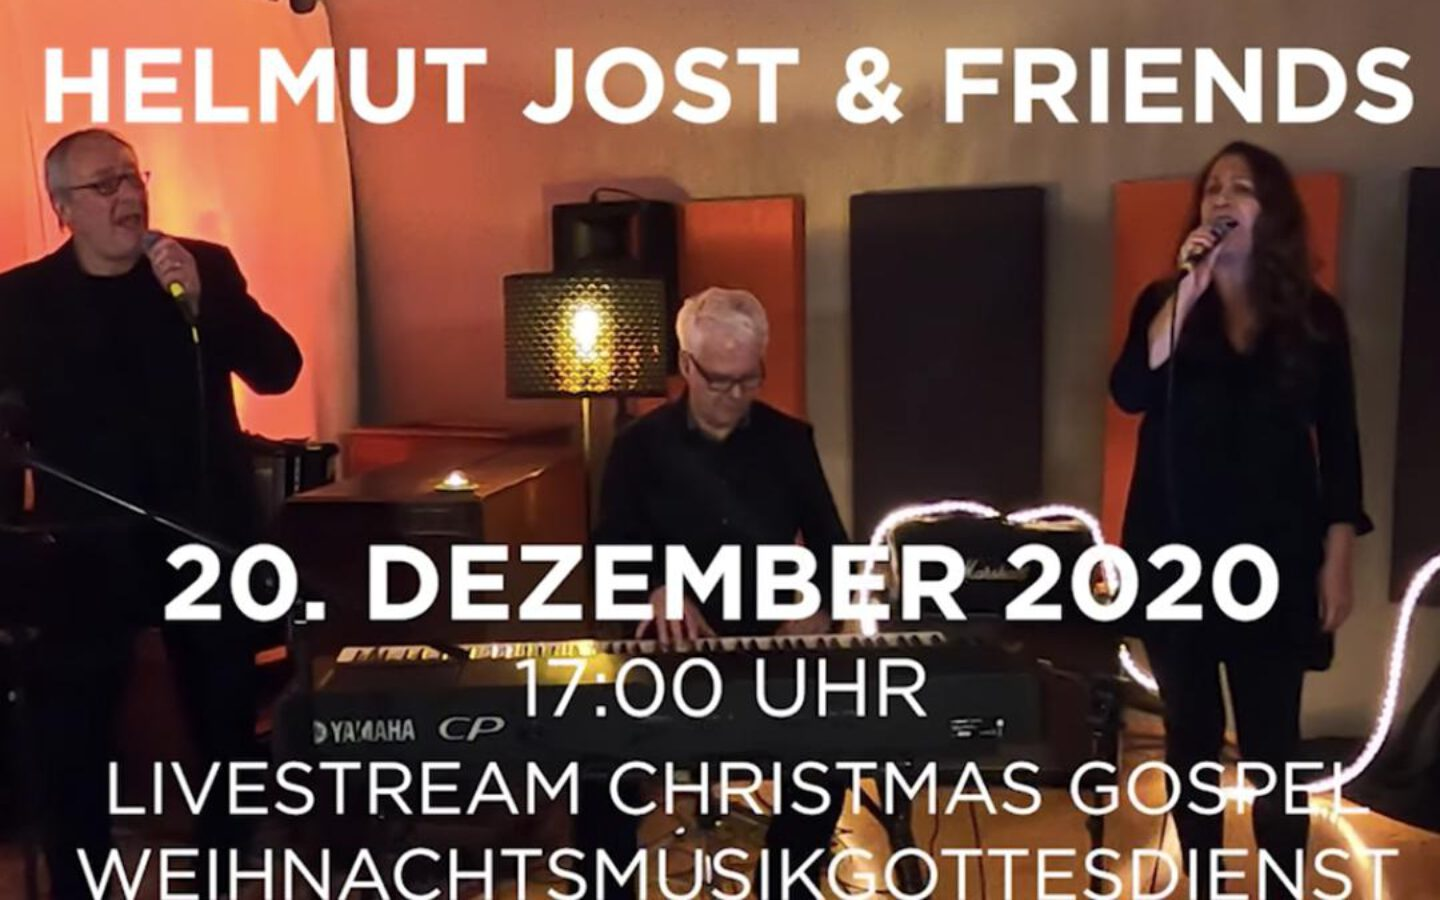 Gospelgottesdienst im Live Stream in der Johanneskirche am 4. Advent